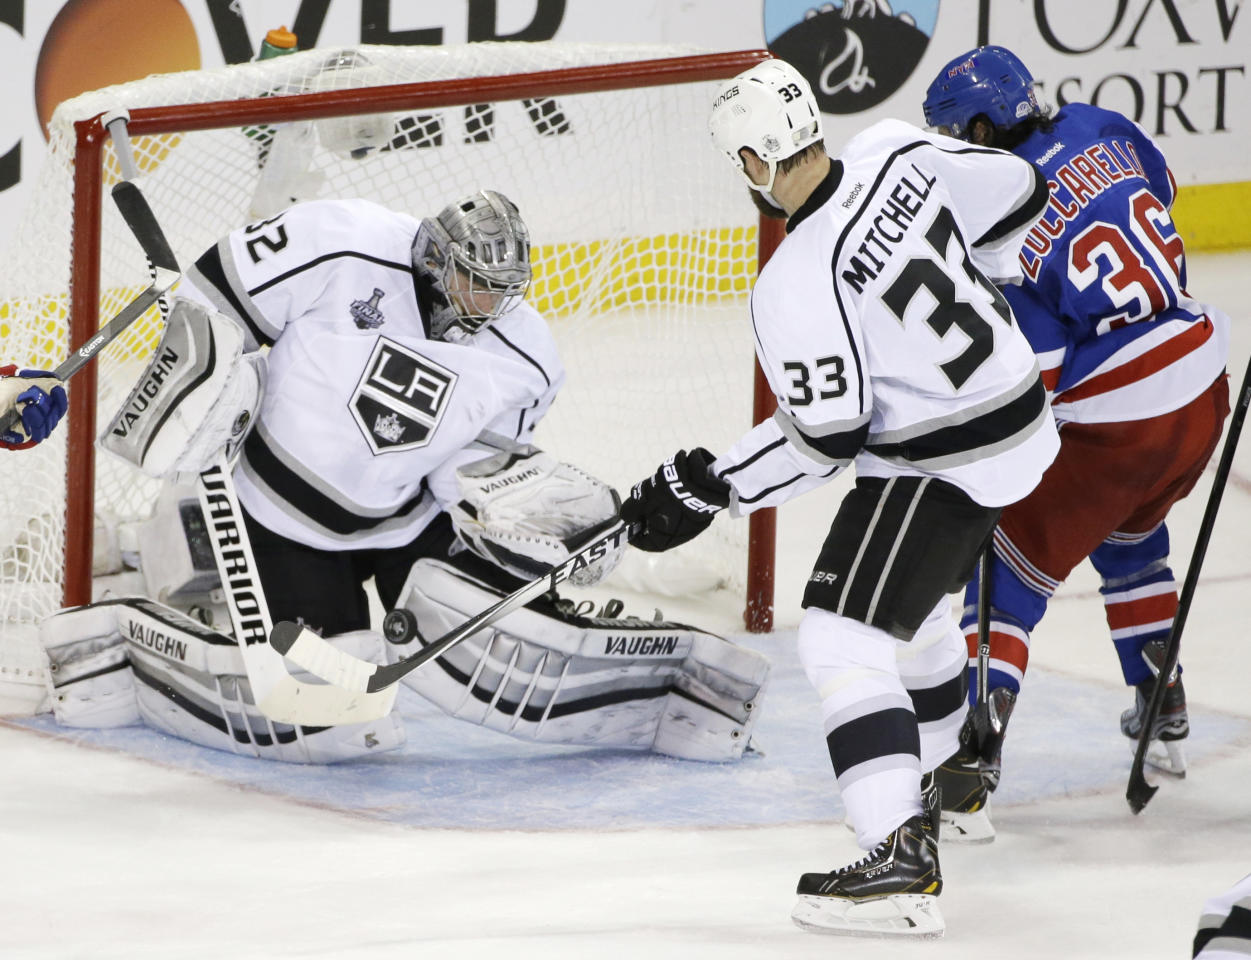 Los Angeles Kings goalie Jonathan Quick (32) blocks a shot by New York Rangers right wing Mats Zuccarello (36) as Kings defenseman Willie Mitchell (33) helps defend in the second period during Game 3 of the NHL hockey Stanley Cup Final, Monday, June 9, 2014, in New York. (AP Photo/Frank Franklin II)